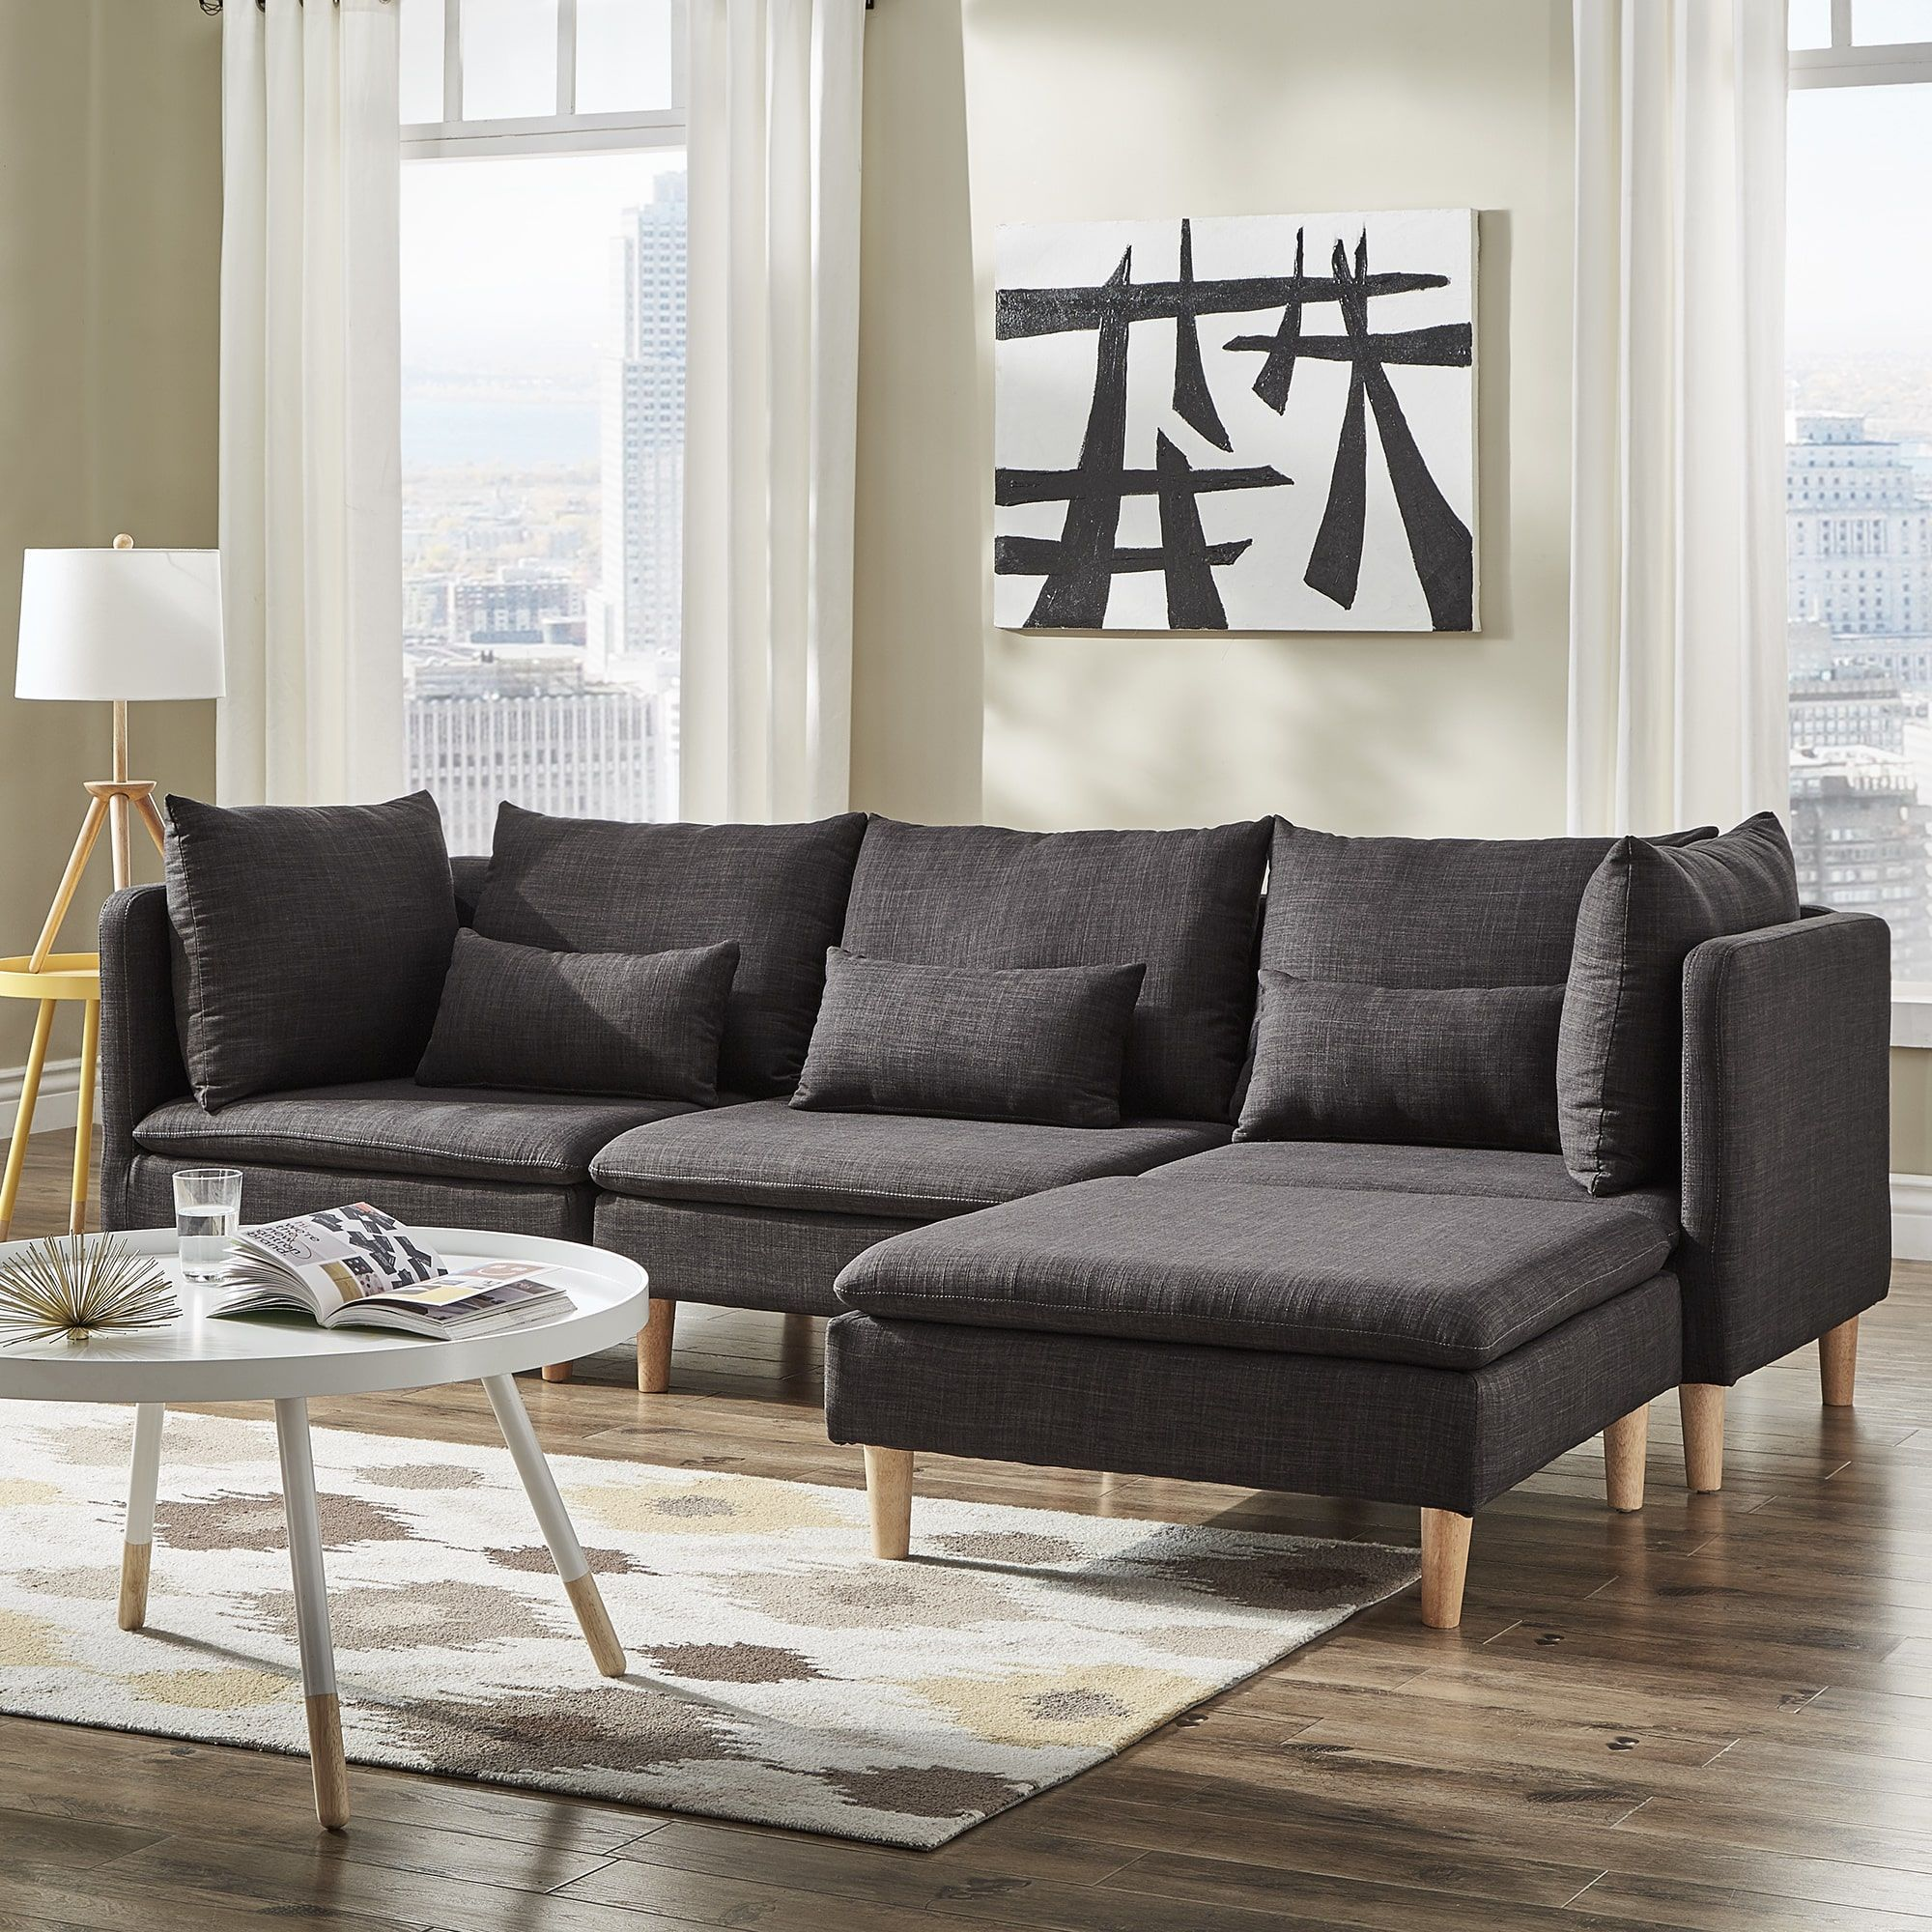 Malina Modular L-Shaped Chaise Sectional Sofa by iNSPIRE Q Modern